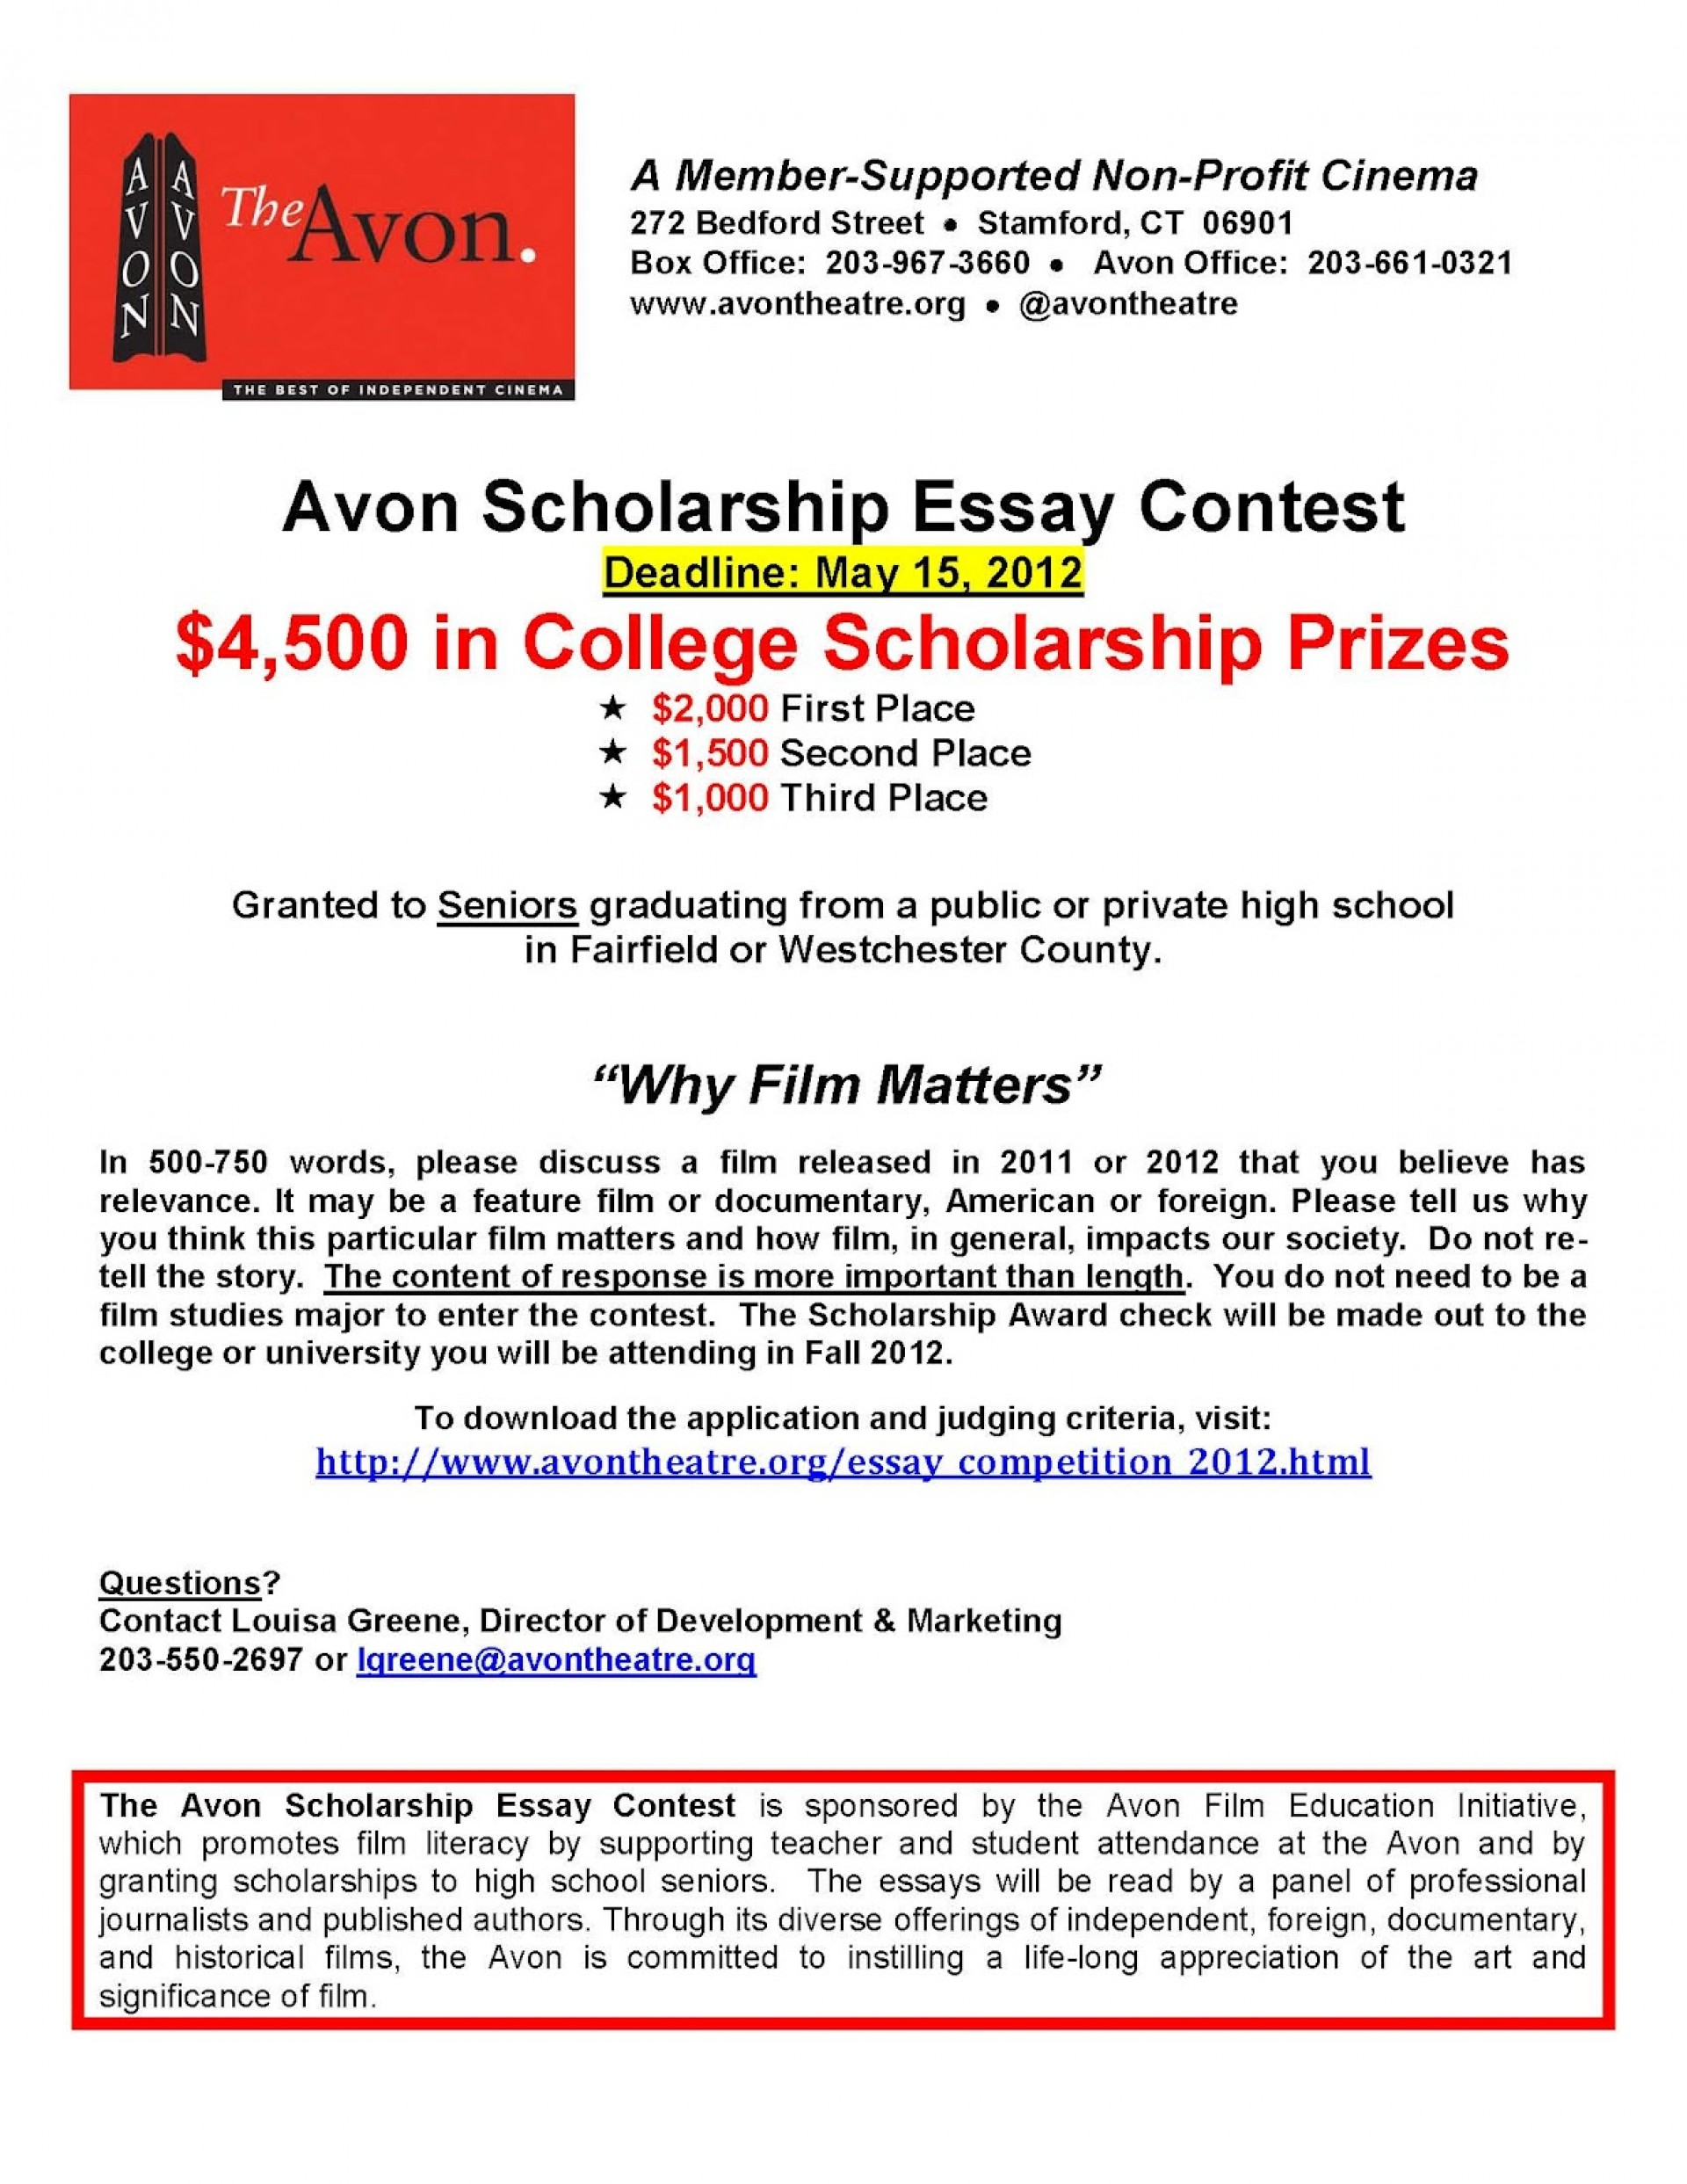 002 Essay Example No Scholarships College Scholarship Prowler Free For High School Seniors Avonscholarshipessaycontest2012 In Texas California Class Of Short Exceptional Undergraduates Students 2019 1920